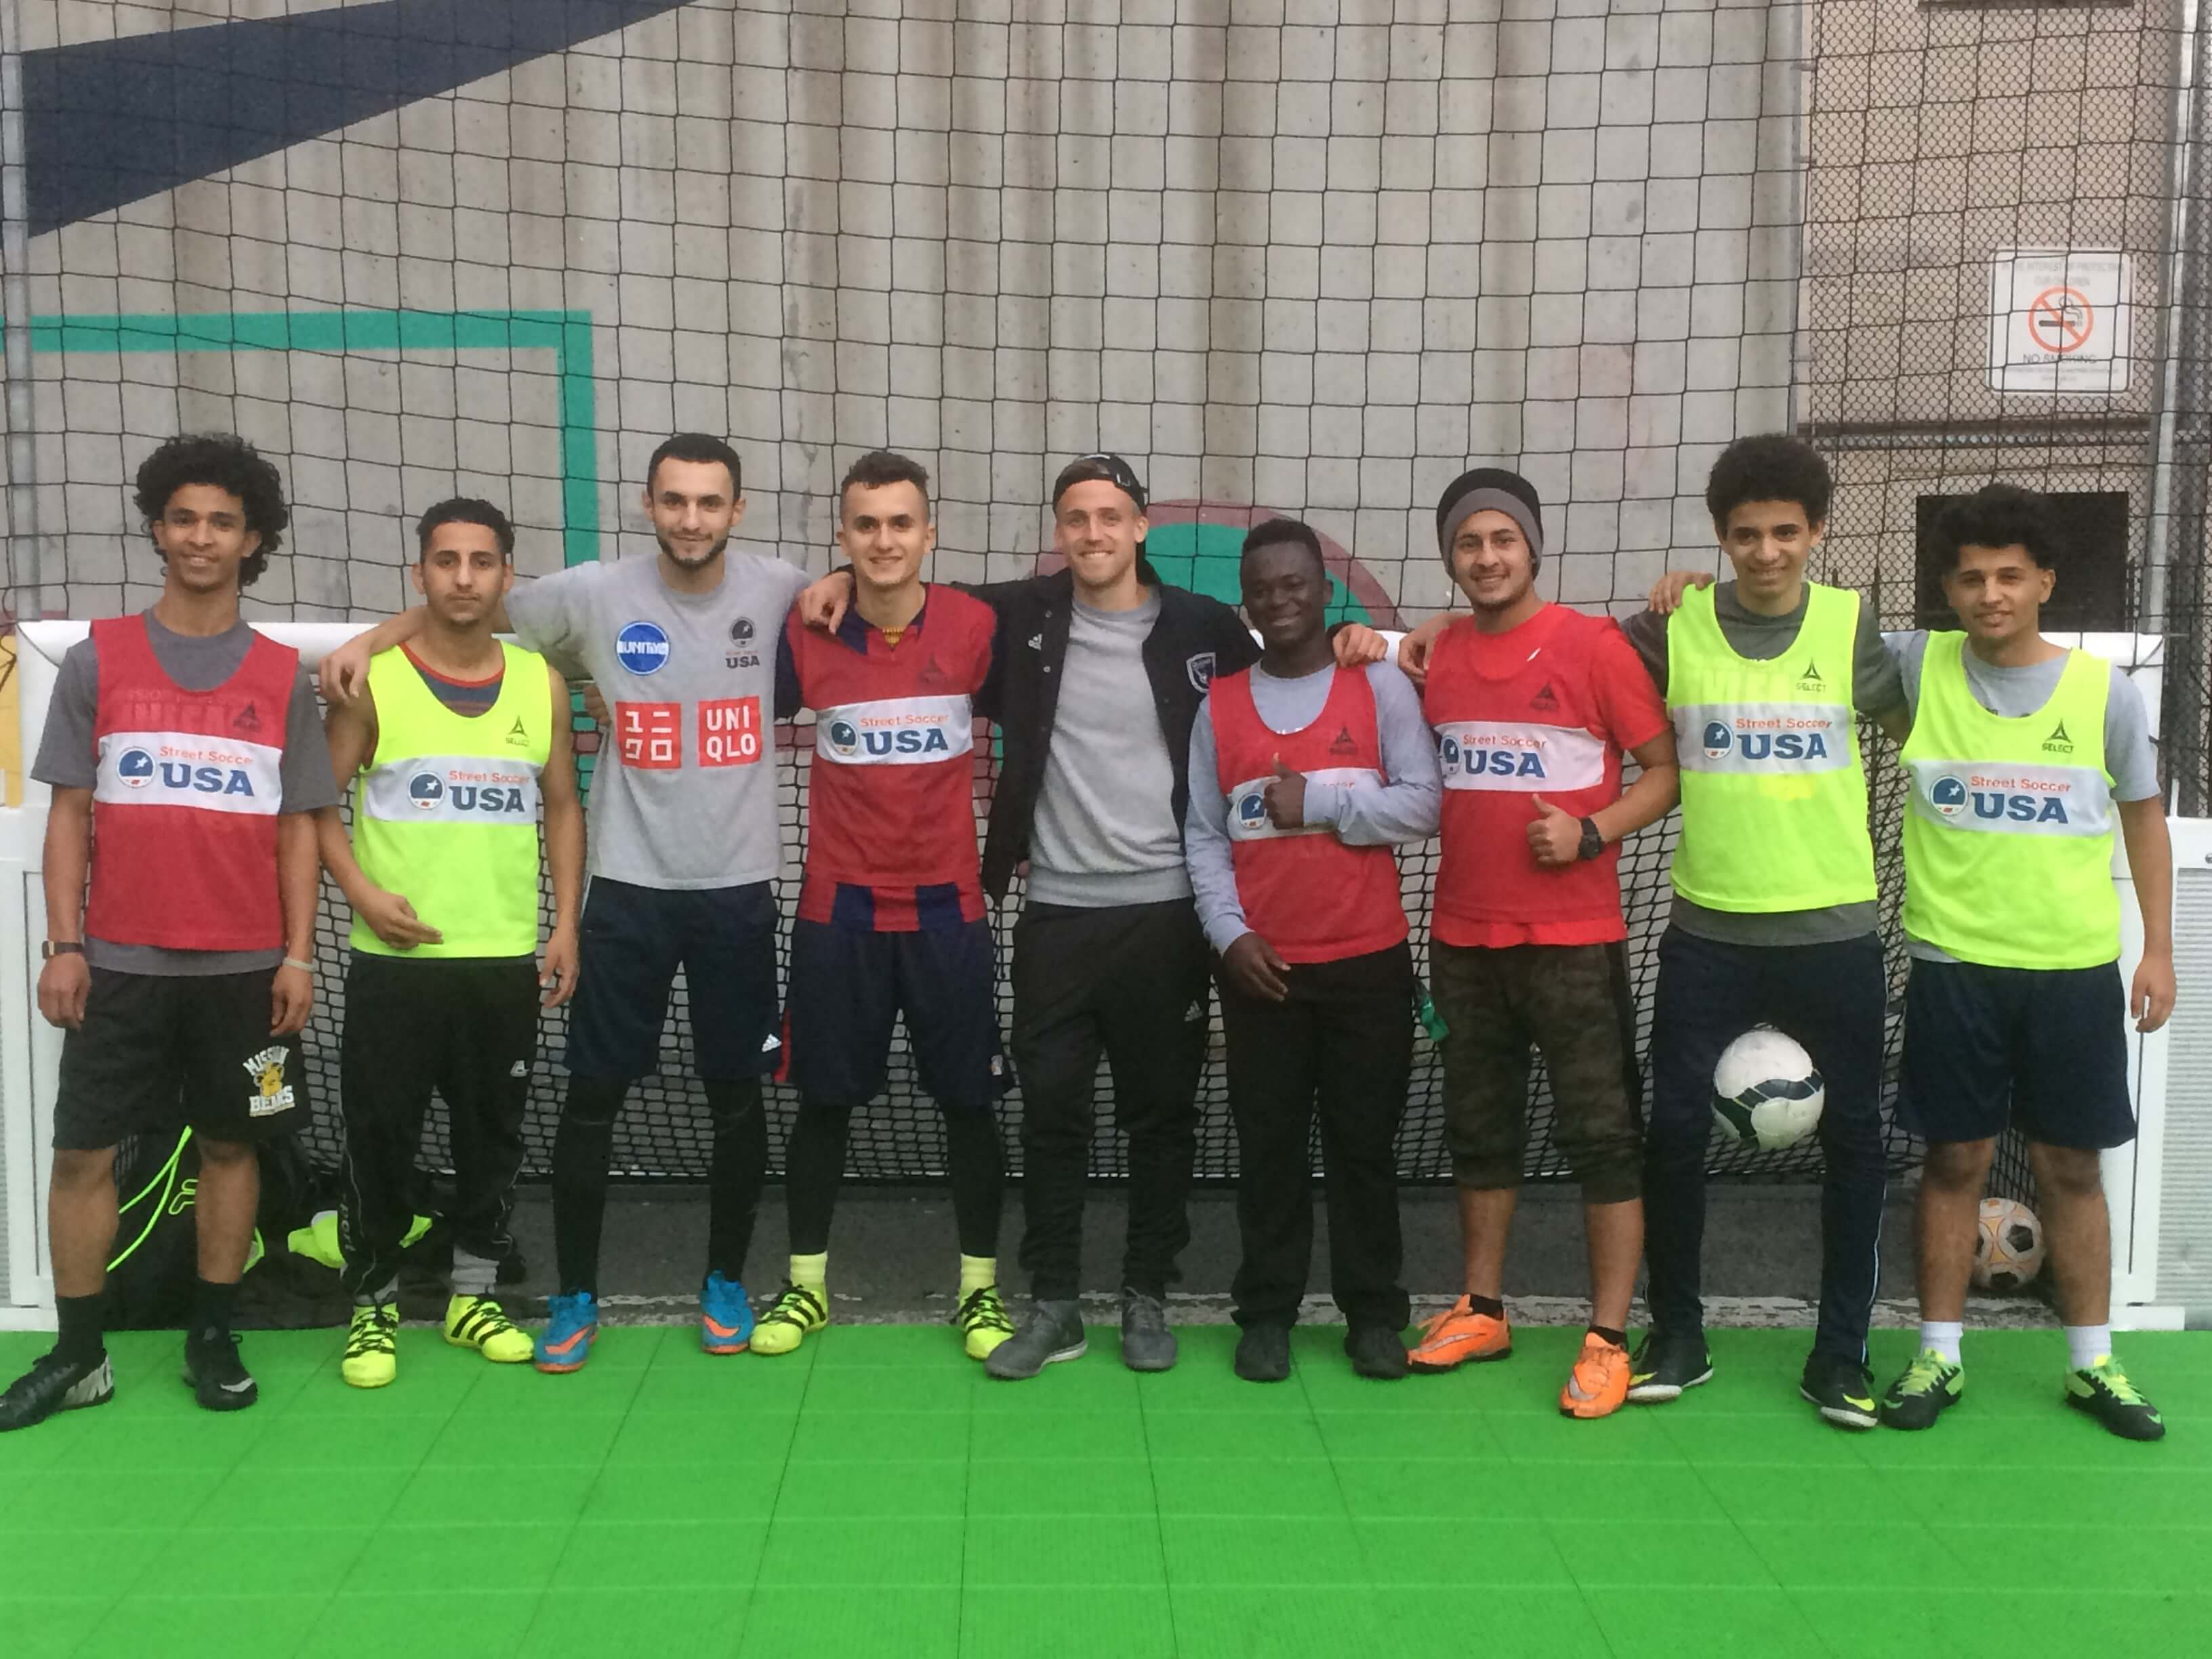 Street soccer usa meet our ssusa all stars around the country the tenderloin youth look forward to attending a sj quakes game this season and watching tommy on the big stage m4hsunfo